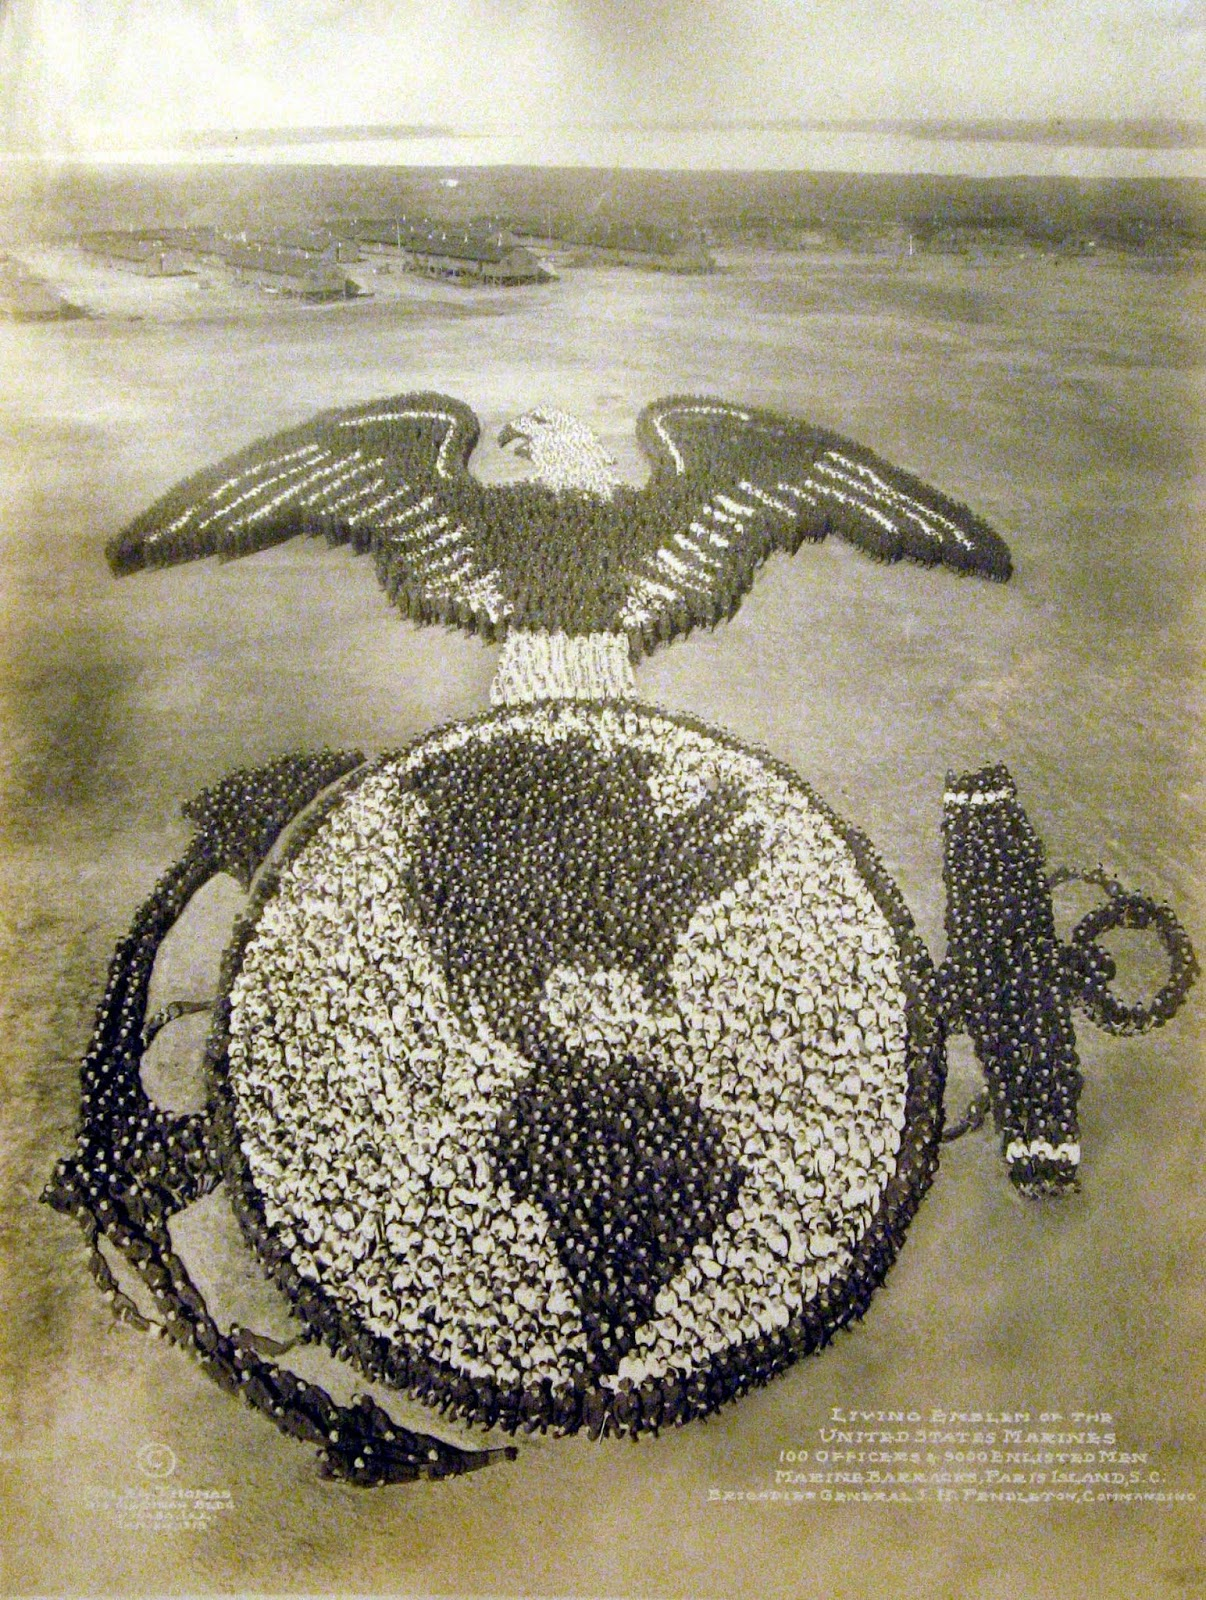 Living Emblem of the United States Marines. 100 Officers & 9000 Enlisted Men.